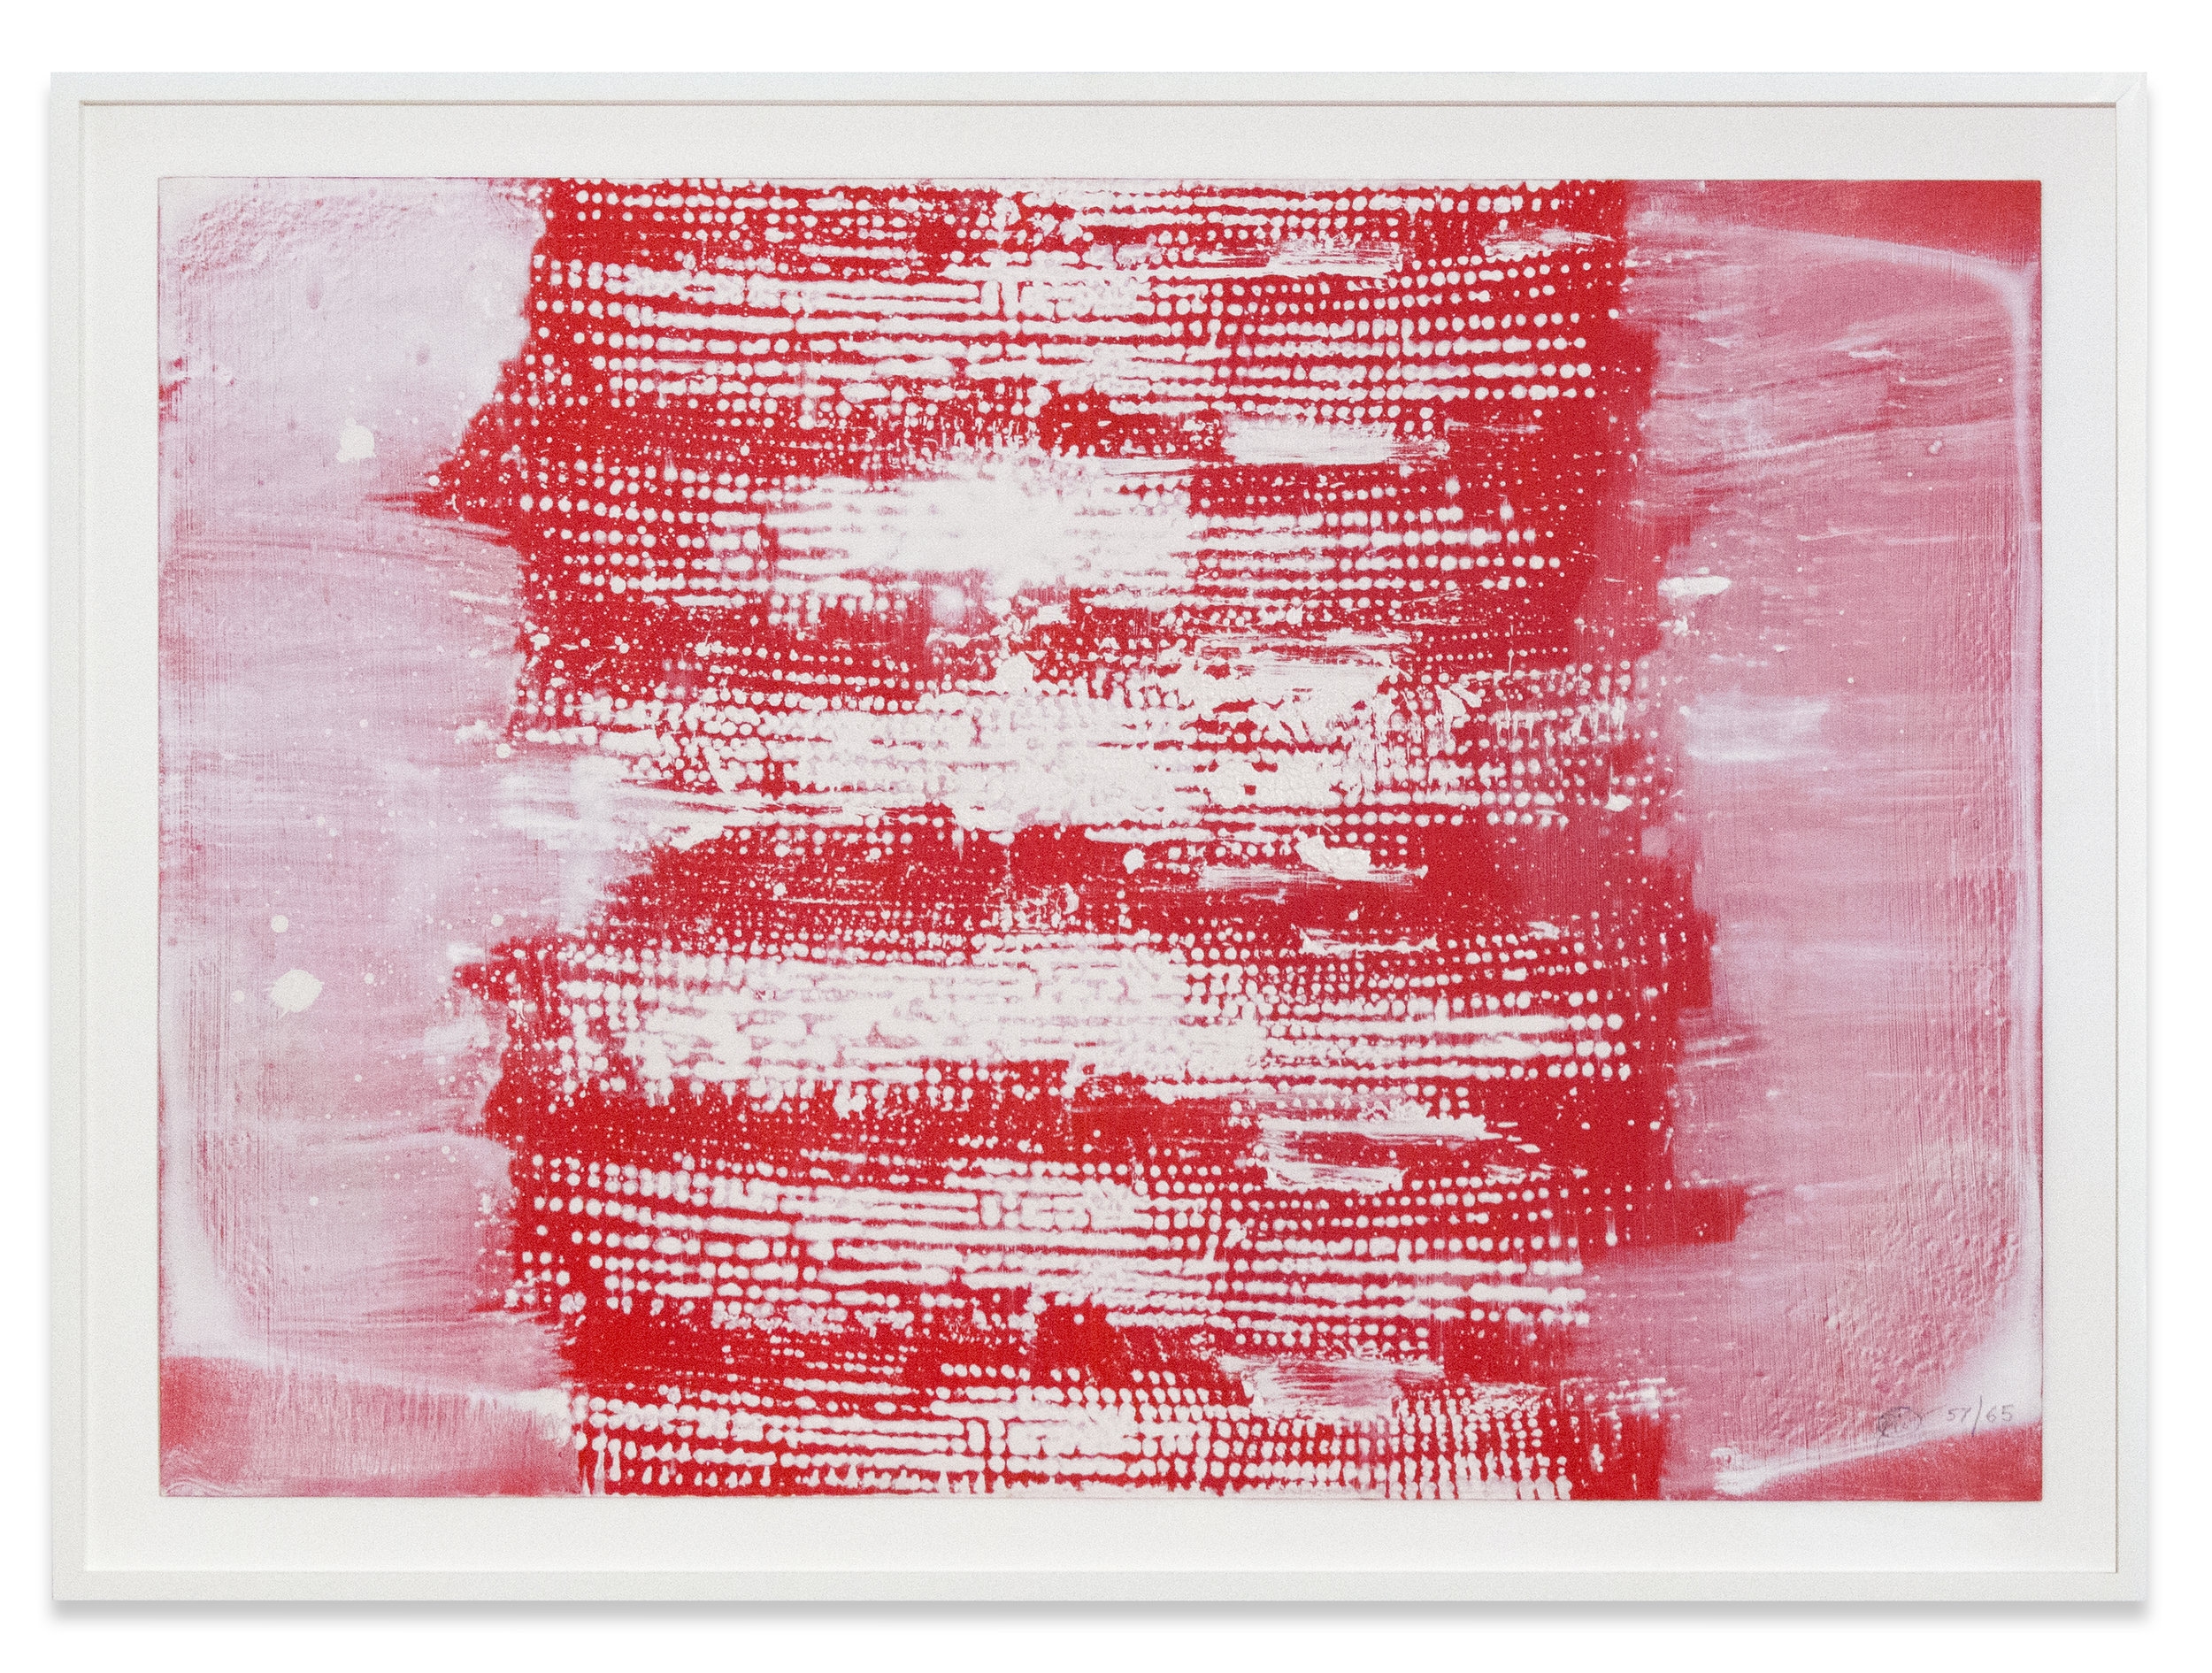 Otto Piene. Untitled, 1957/1965. Oil on paper mounted on board. 72 x 101.6 cm. 84 x 112 cm (framed). Courtesy of Sprüth Magers.